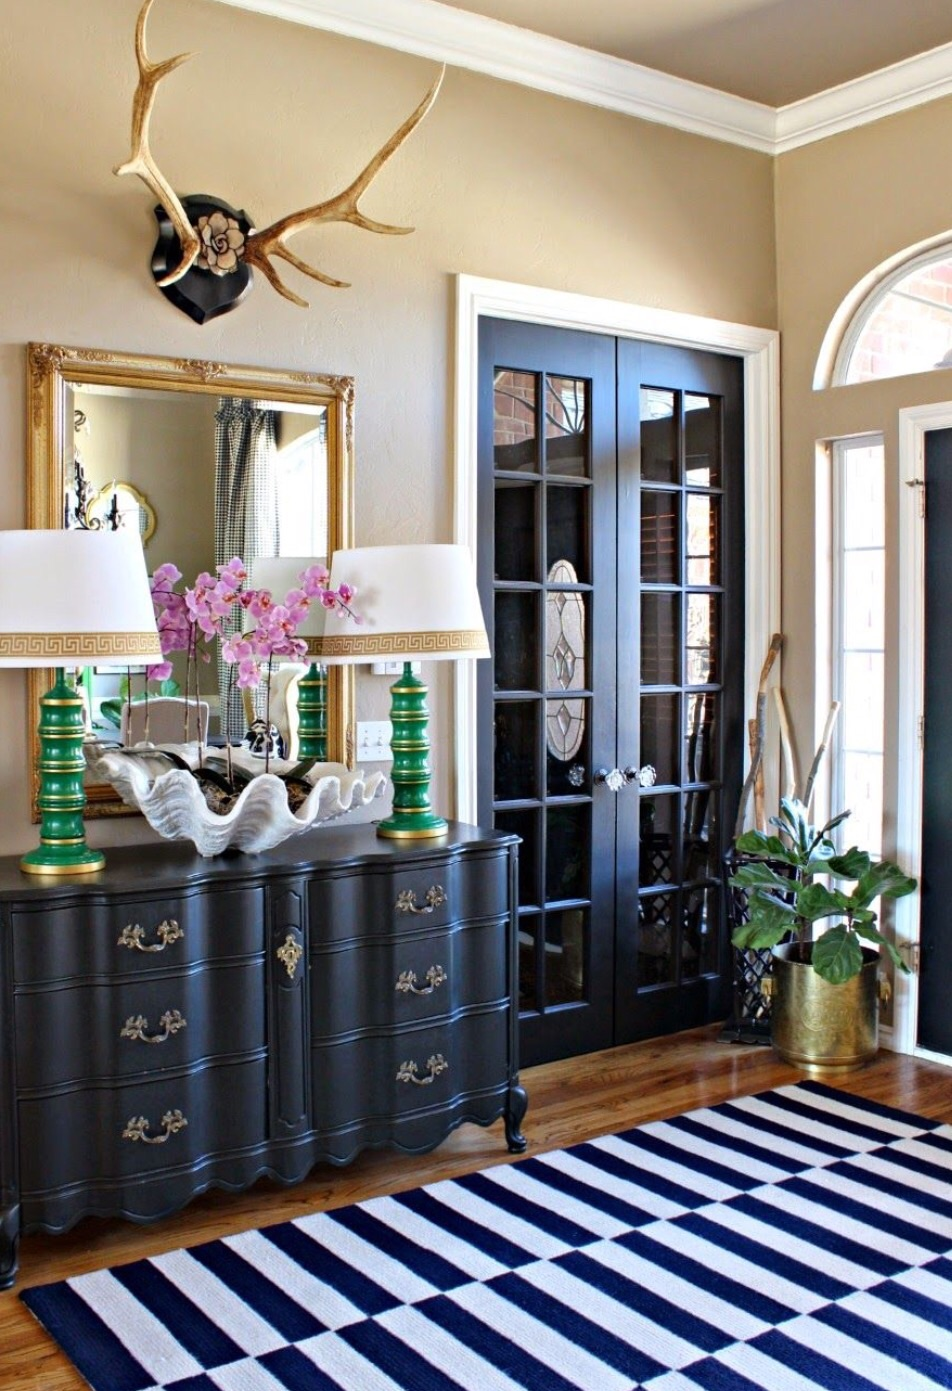 #3 Black Doors Add Balance To Other Black Décor In The Room